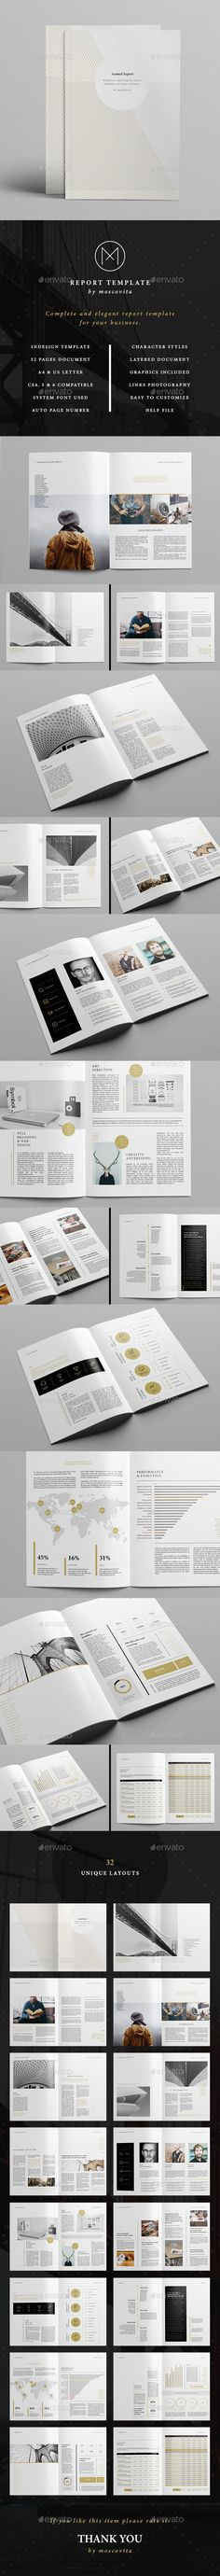 Report  —  InDesign Template • Only available here! → https://graphicriver.net/item/report/12828233?ref=pxcr